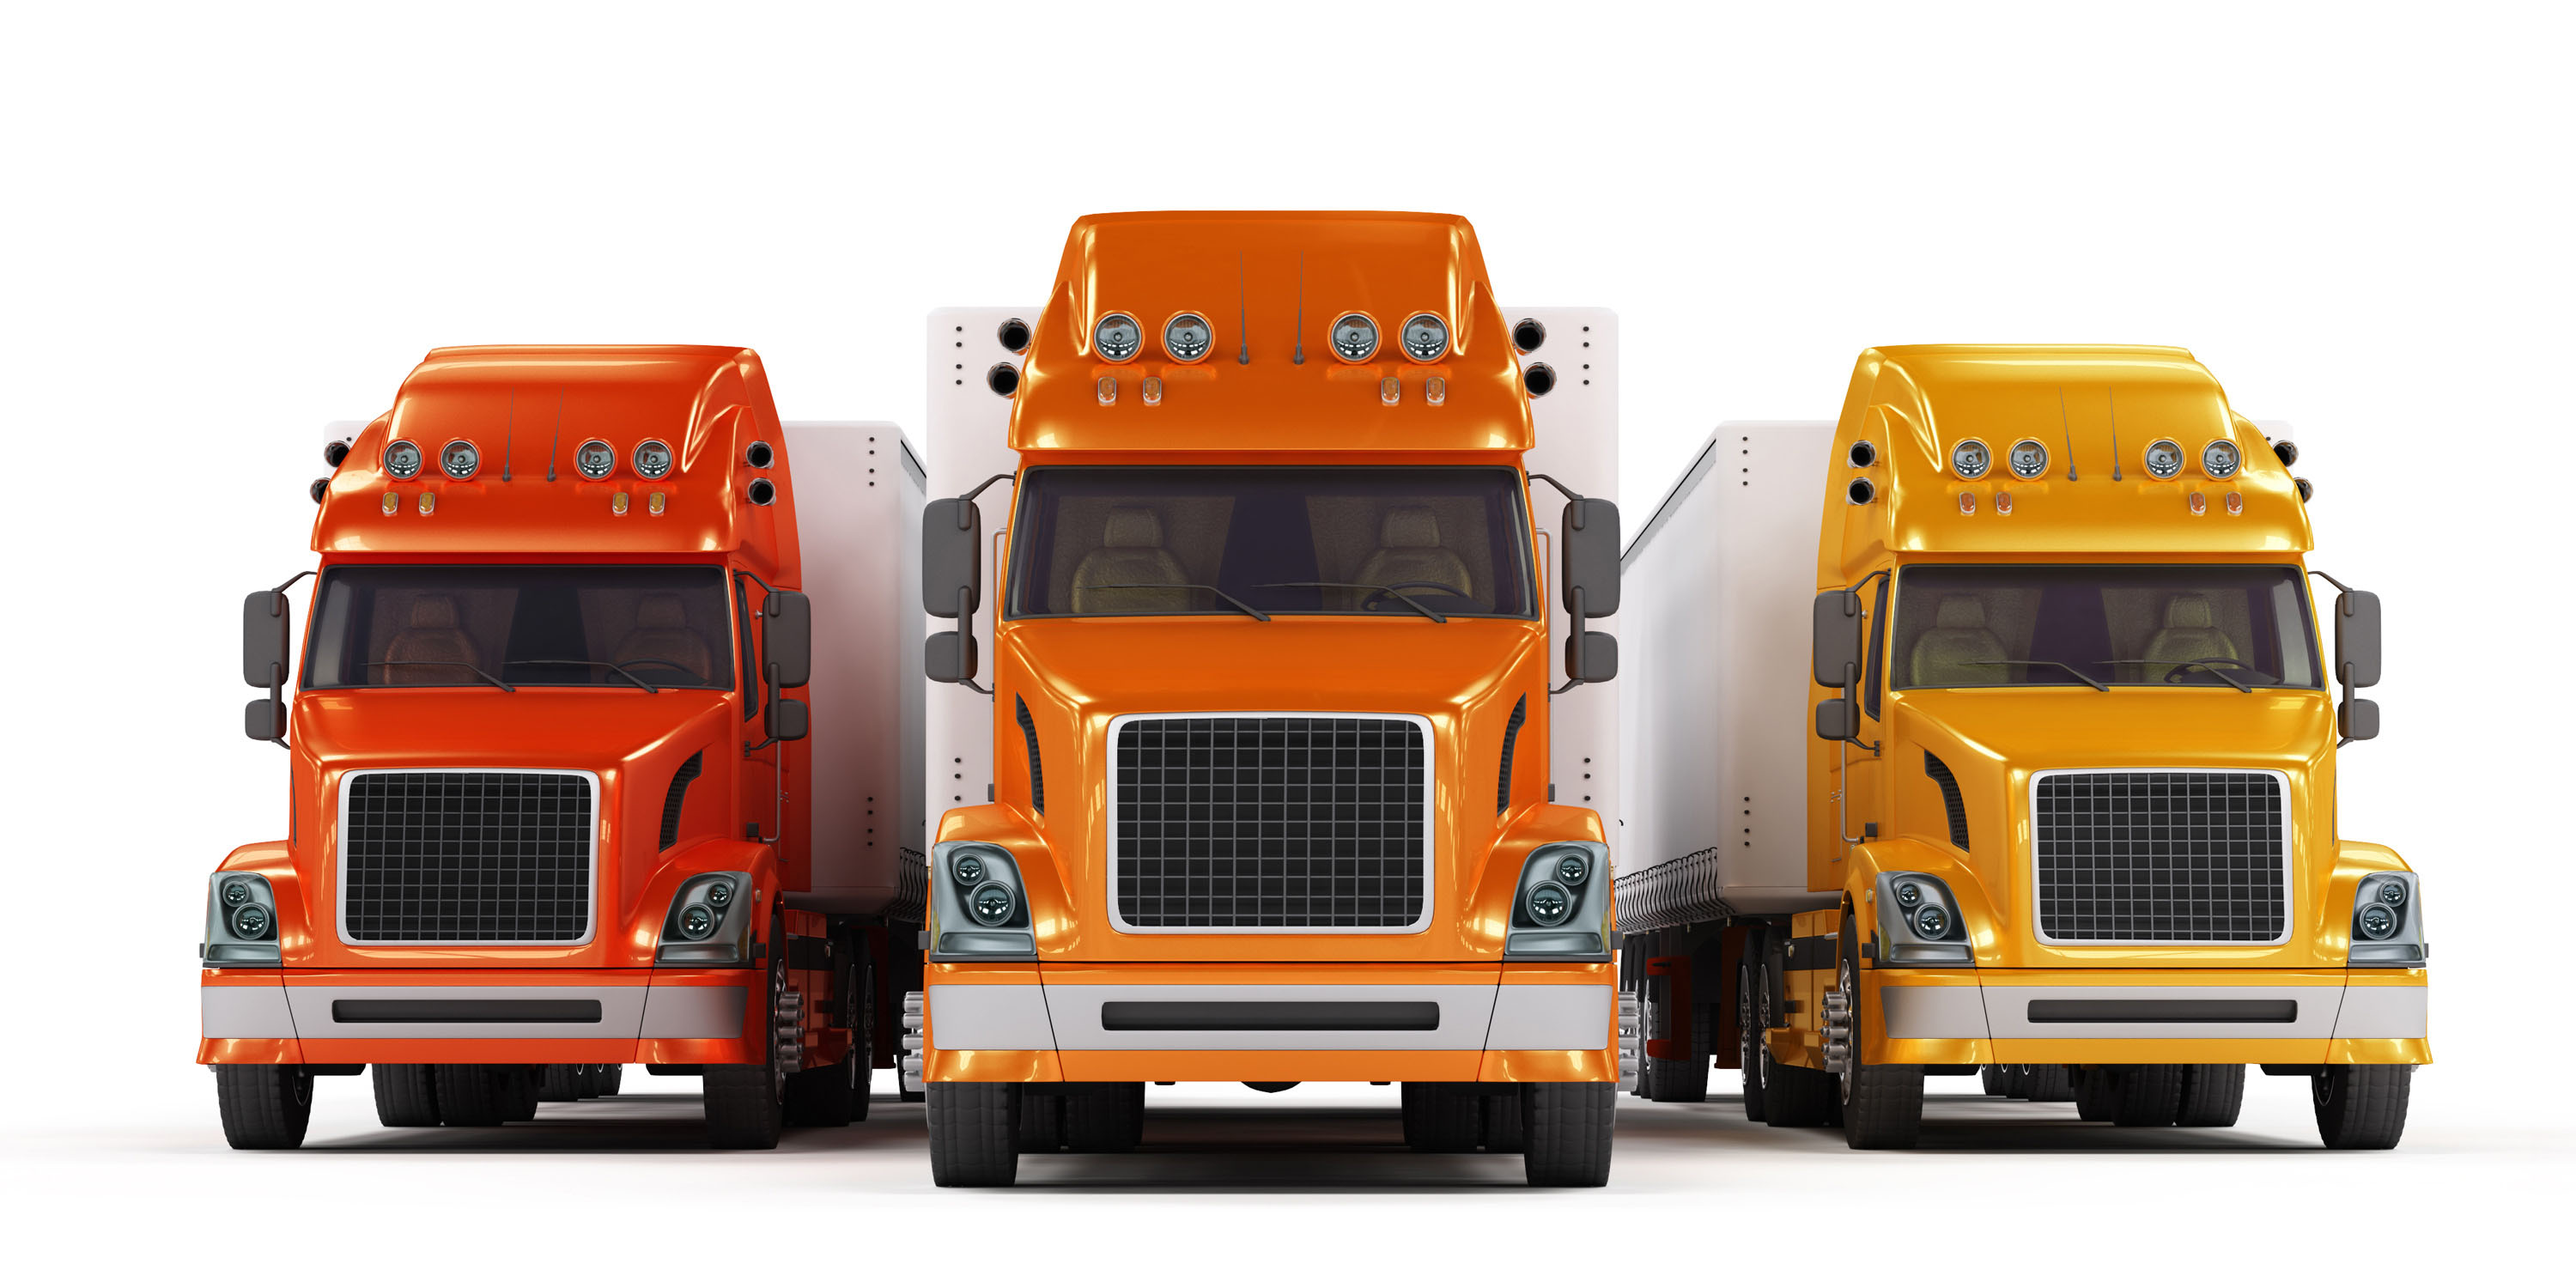 Truck Backgrounds on Wallpapers Vista